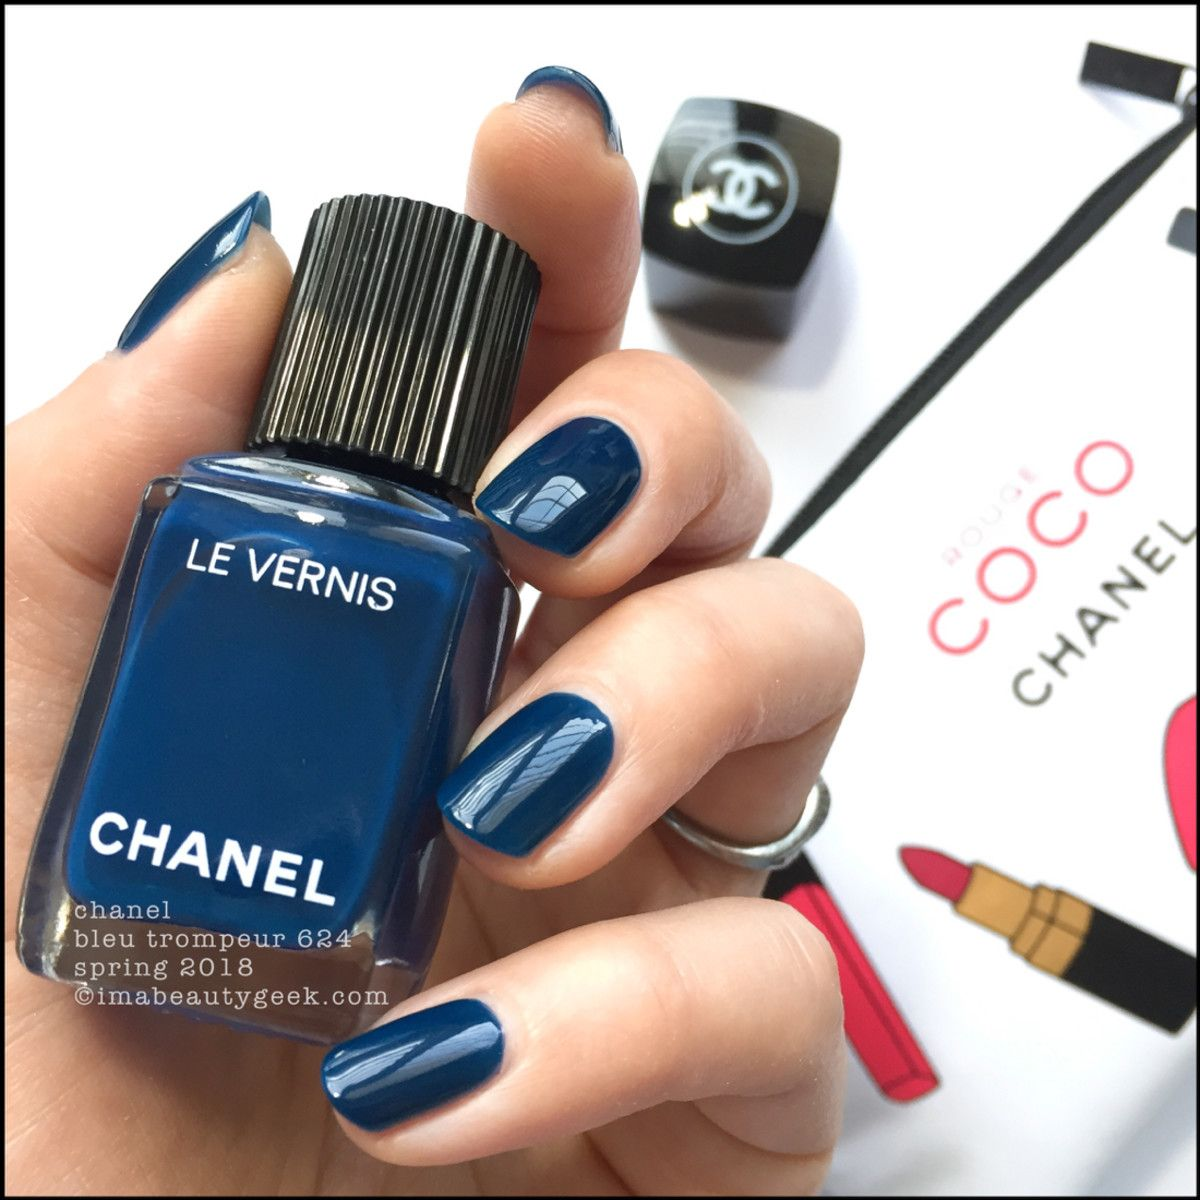 CHANEL LE VERNIS SPRING 2018 SHADES